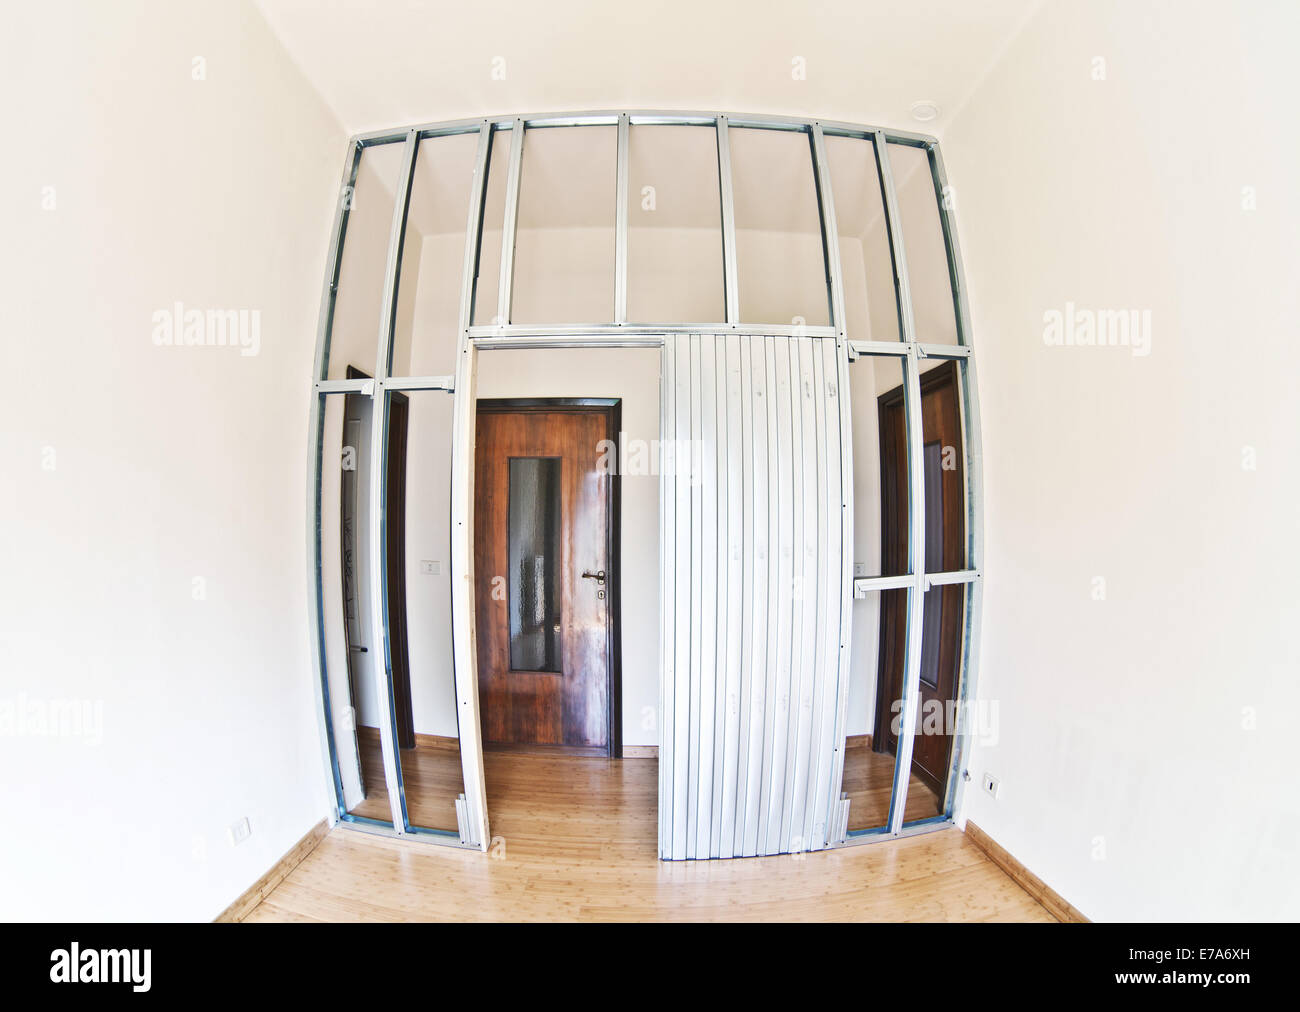 metal structure for drywall detail - Stock Image